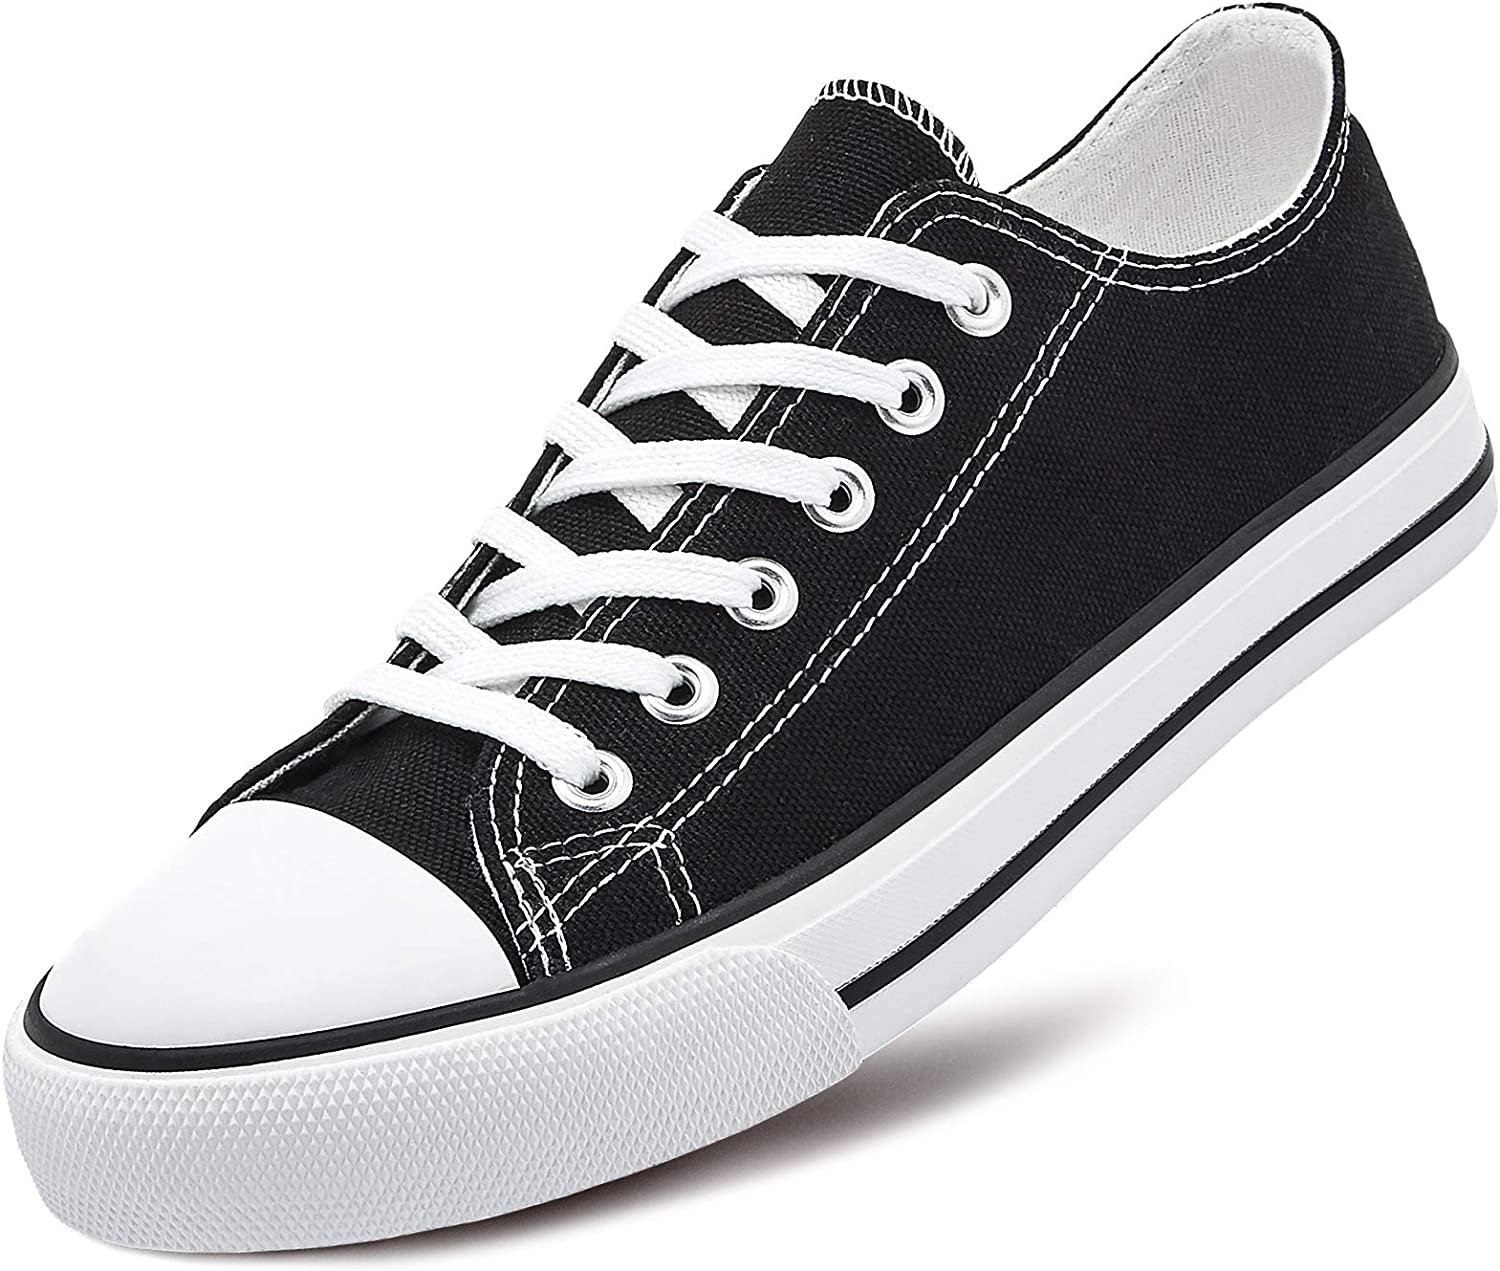 Adokoo Womens Canvas Shoes Casual Cute